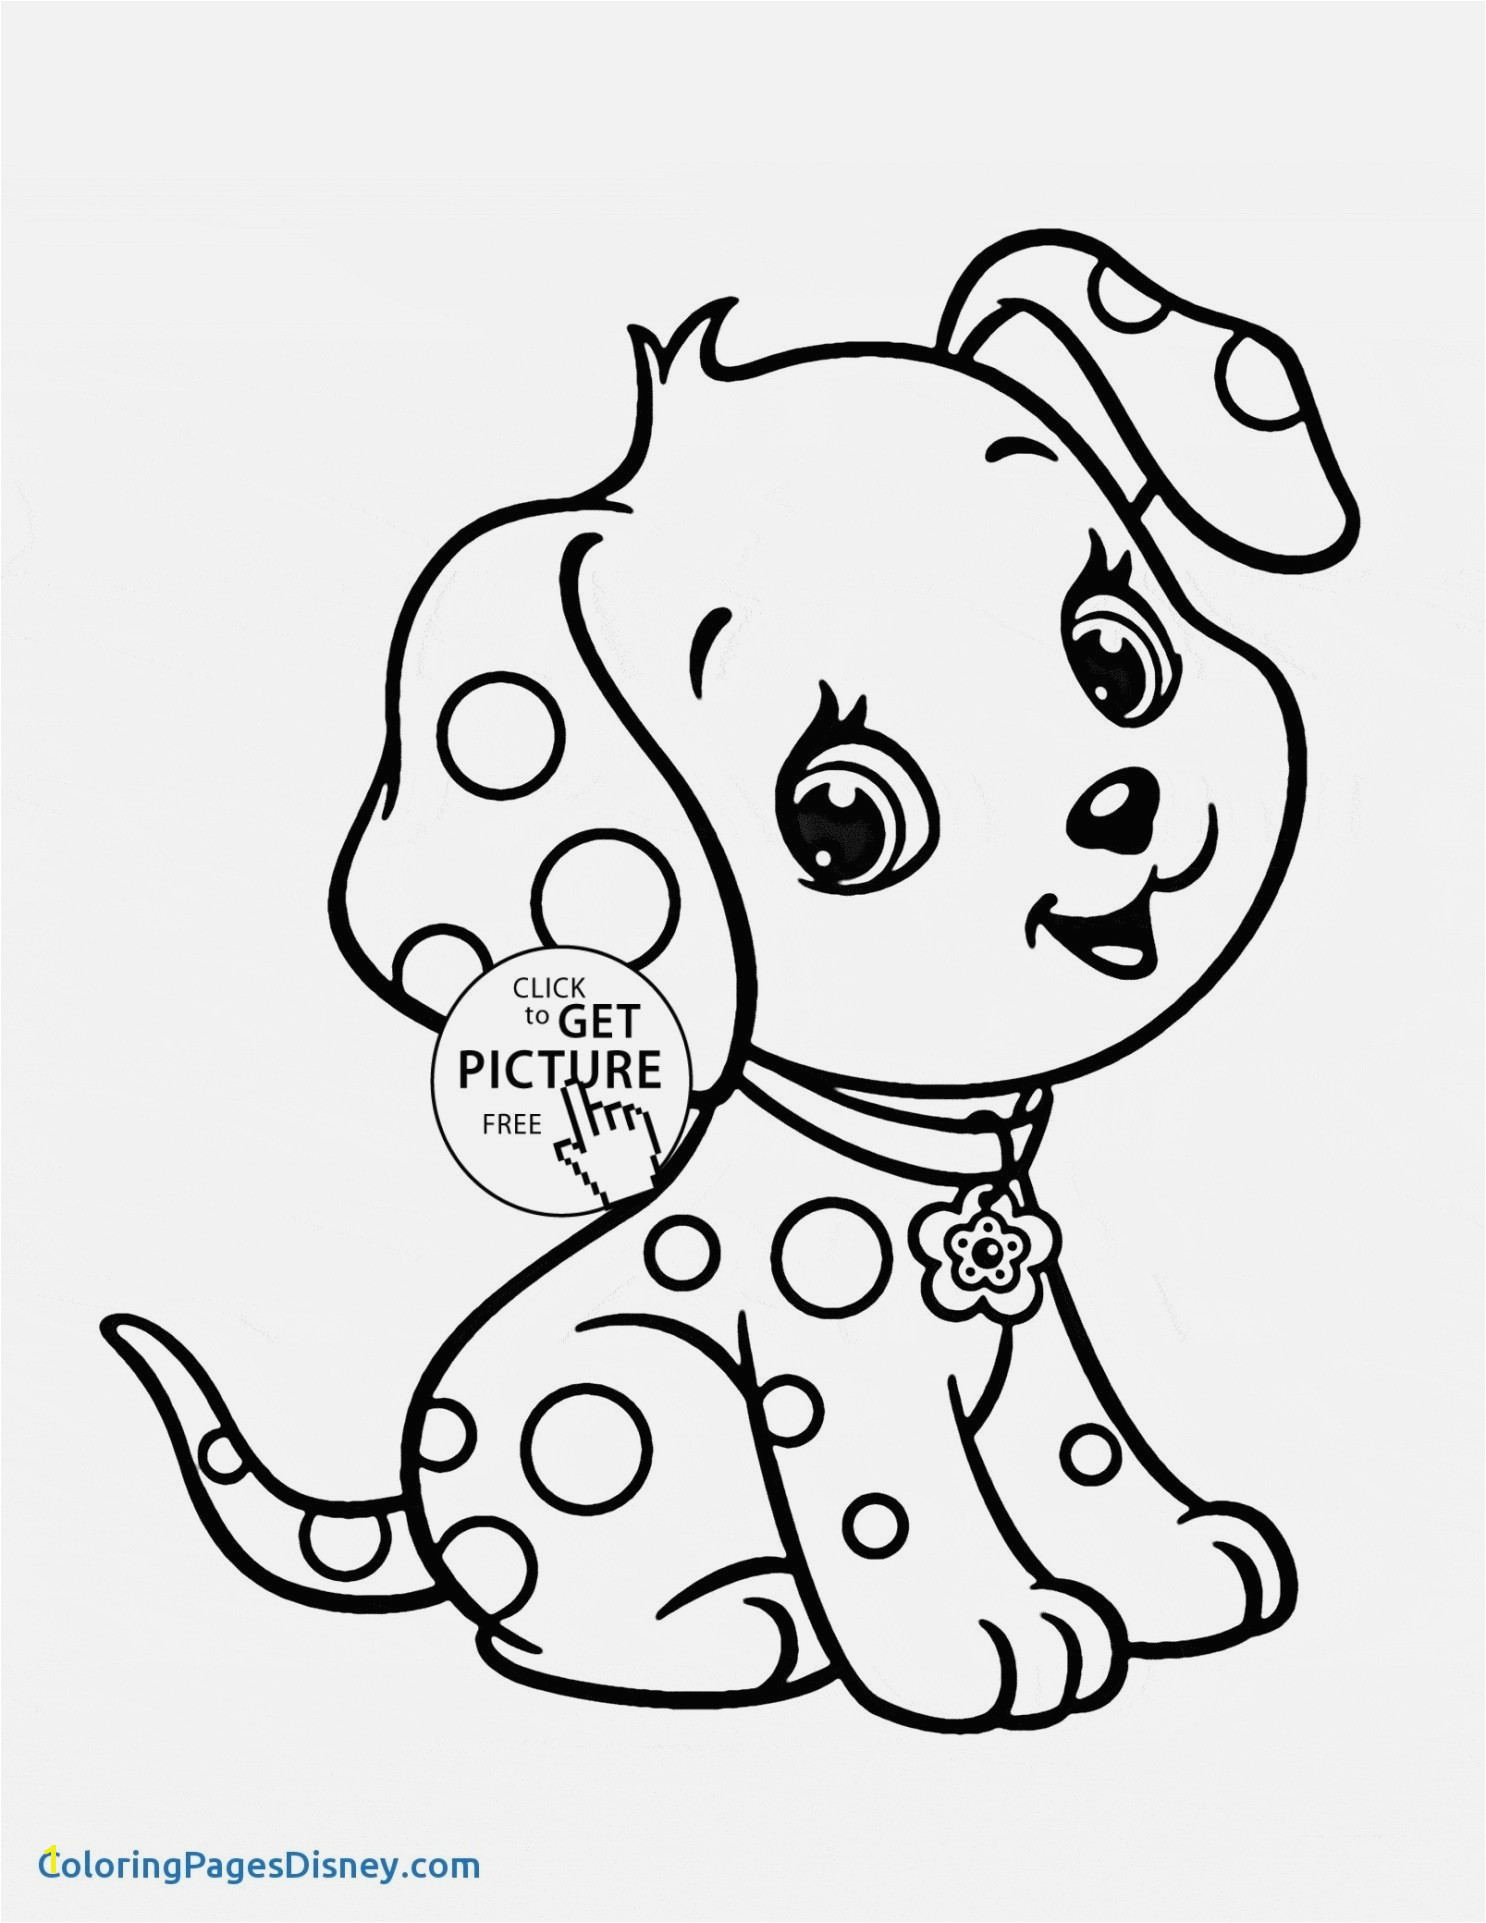 Free Fall Coloring Pages Best Ever Printable Kids Books Elegant Fall Coloring Free 30aa Pages 0d